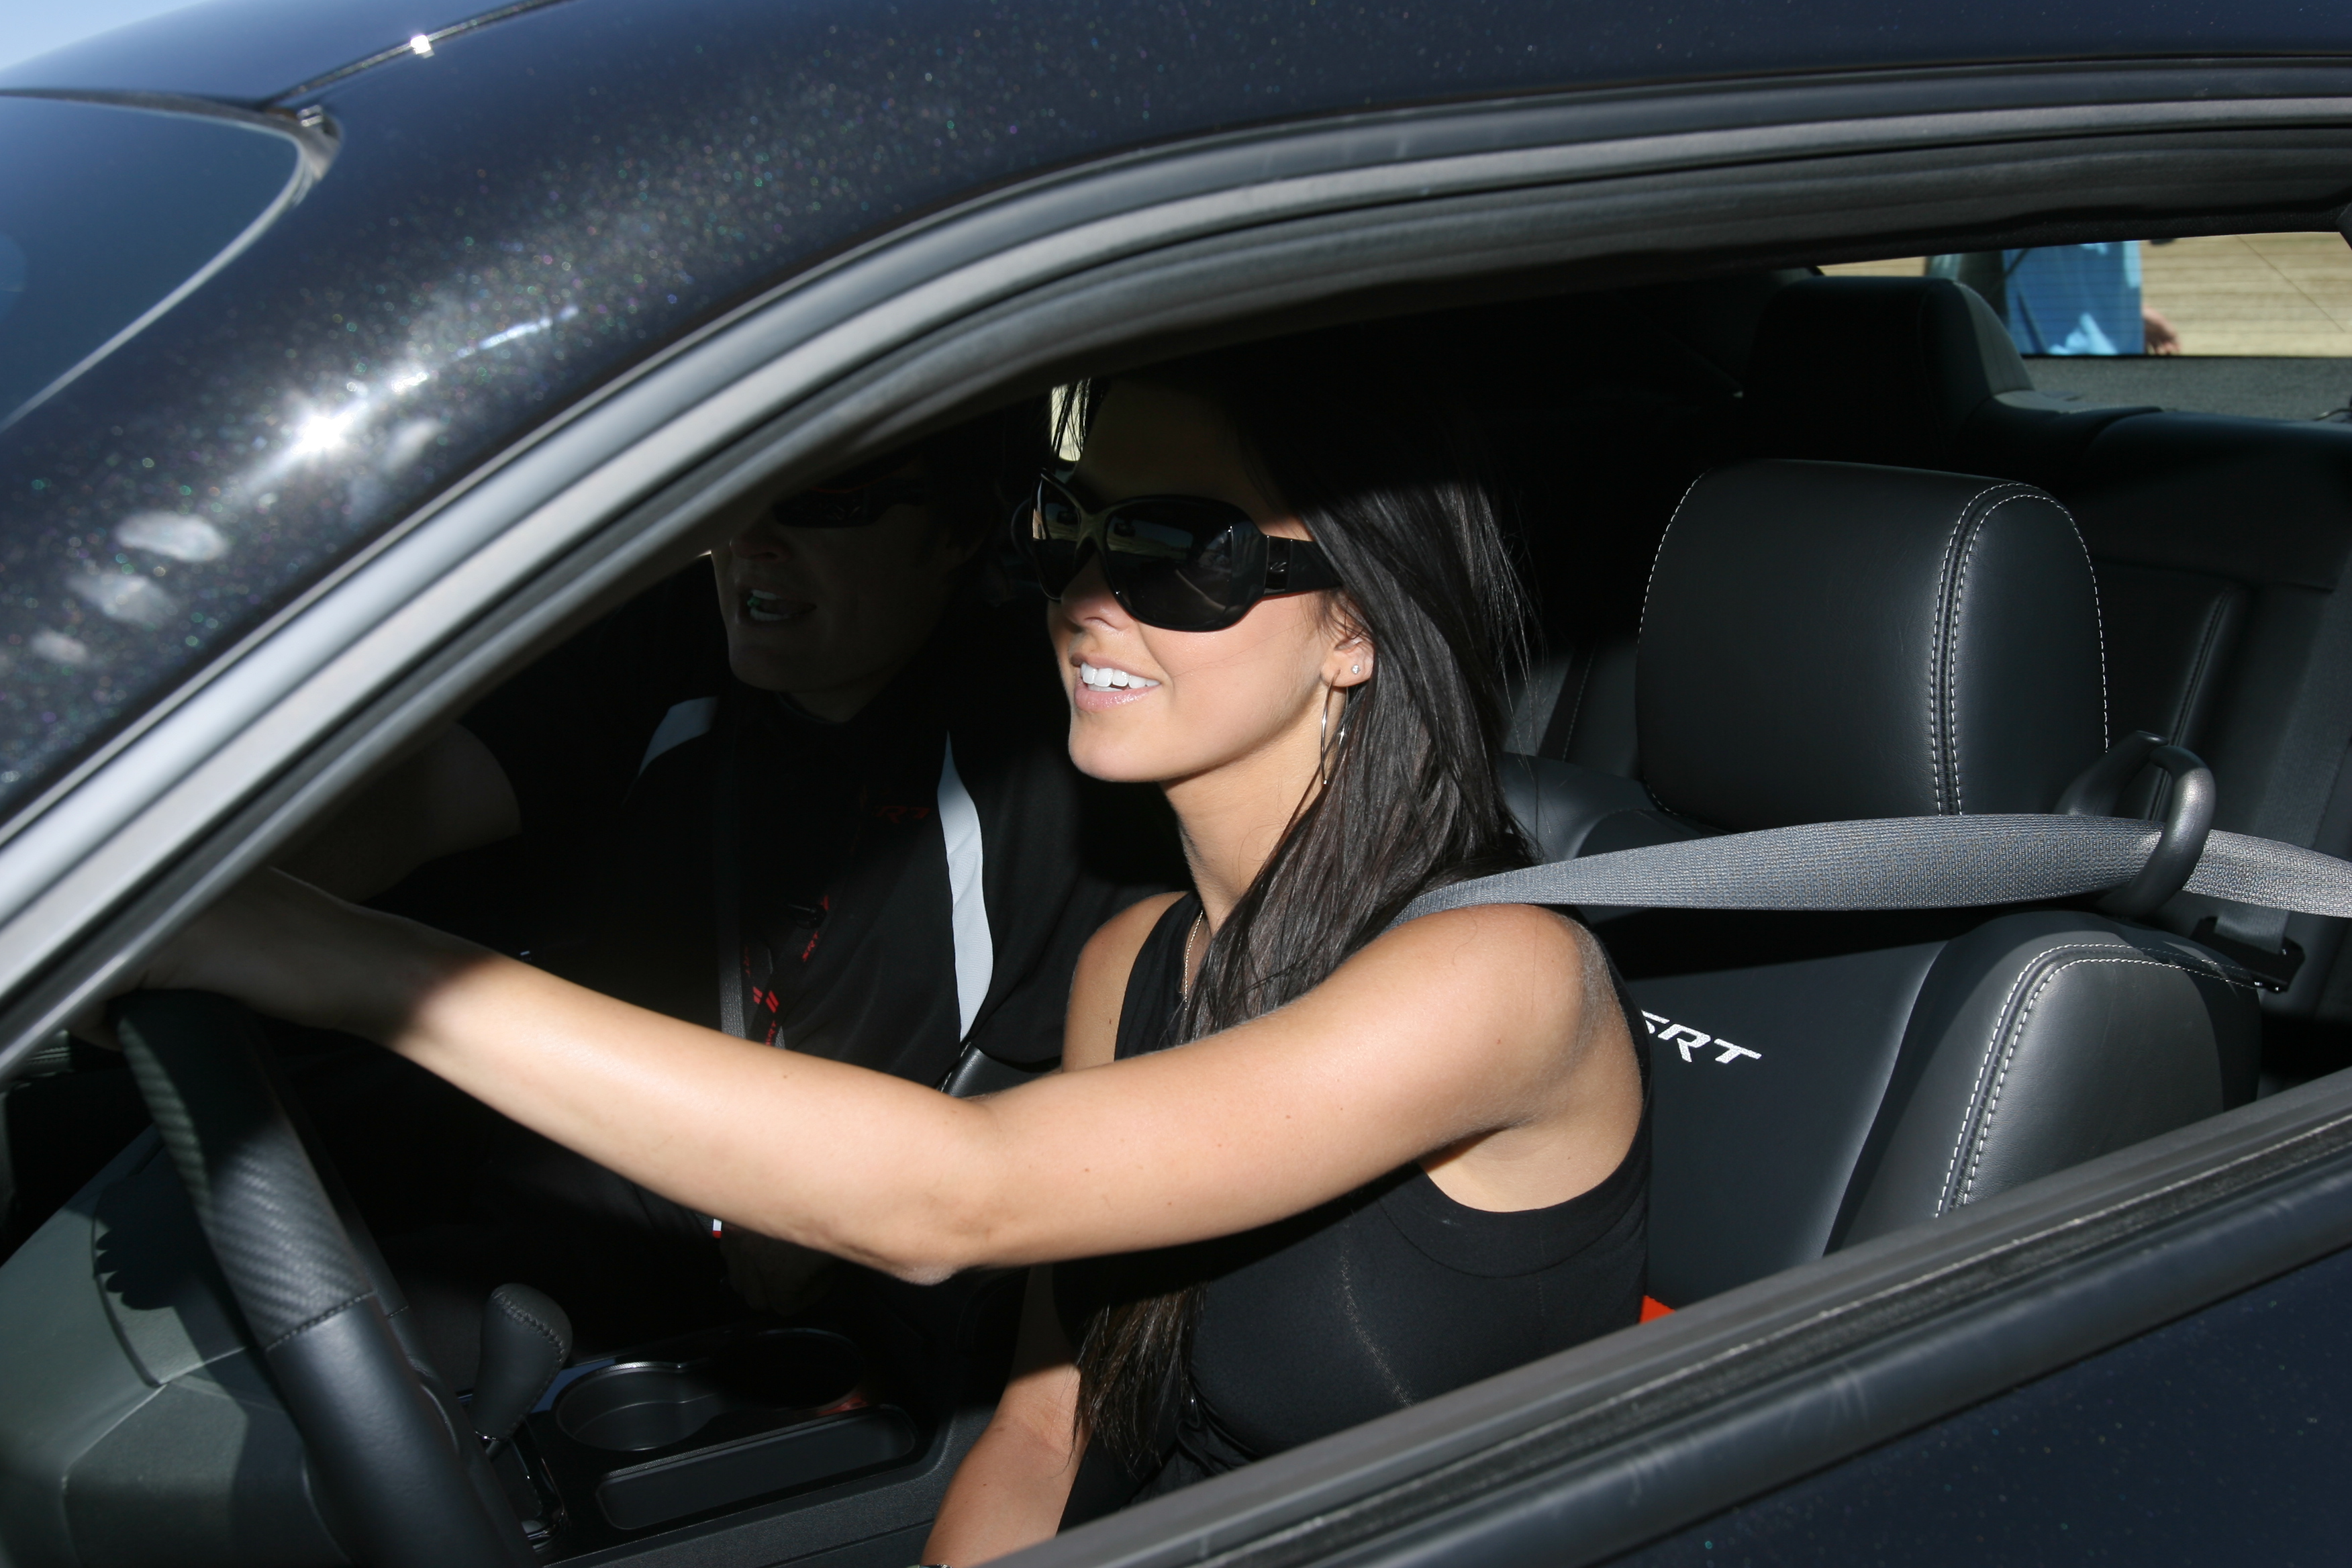 File:Audrina Patridge driving.jpg - Wikimedia Commons